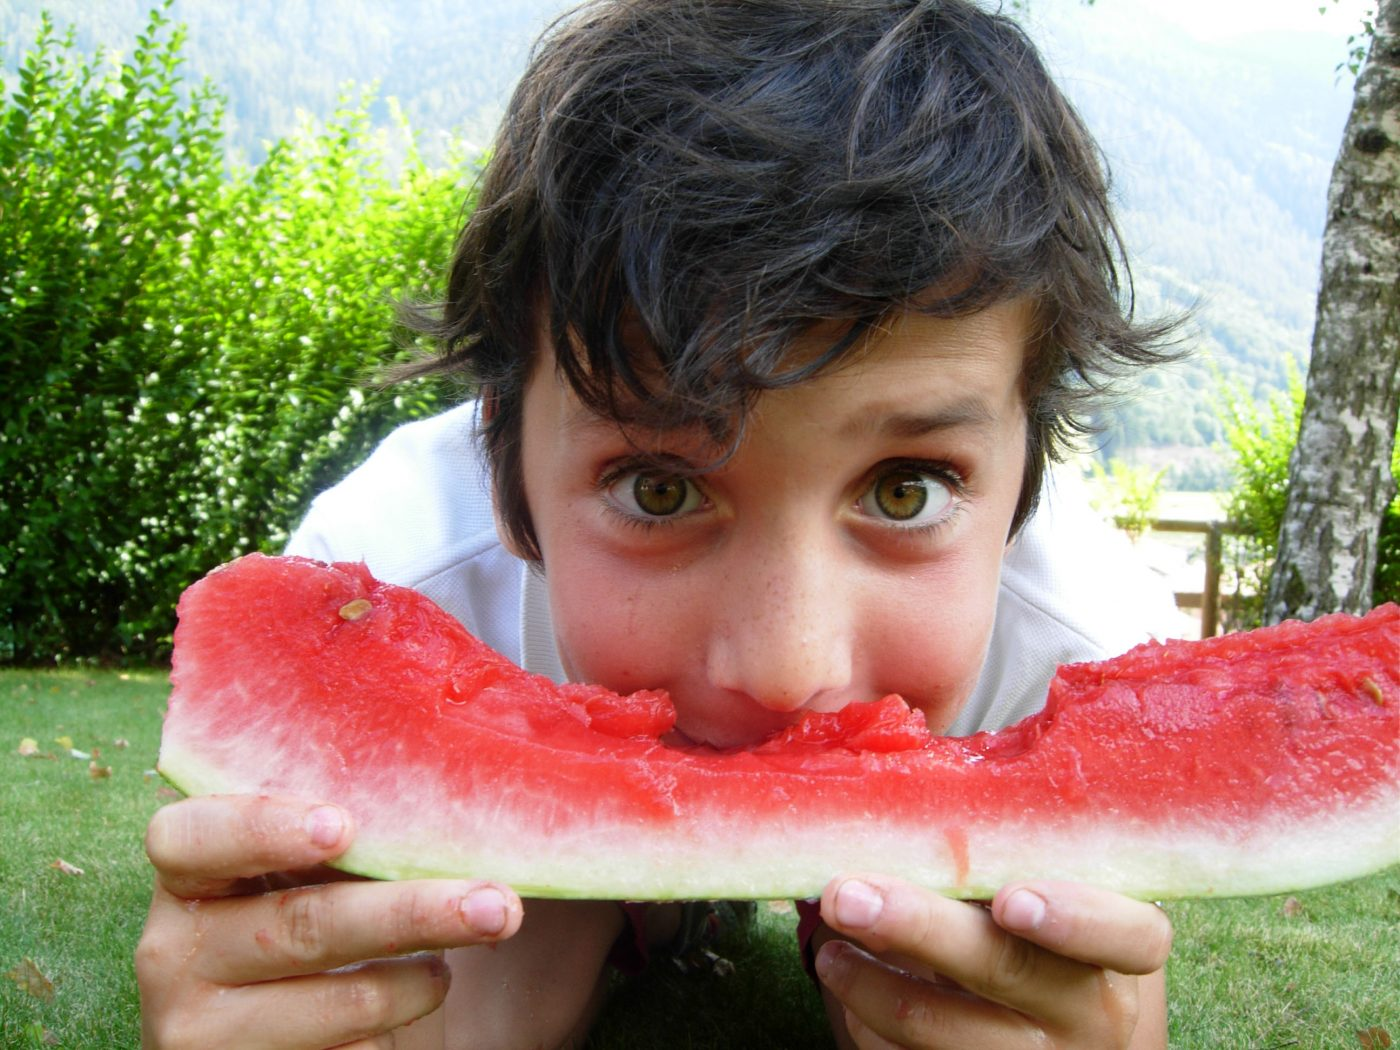 watermelon-diving-in-a-watermelon-1320508-freeimages-by-valentina-salvadei